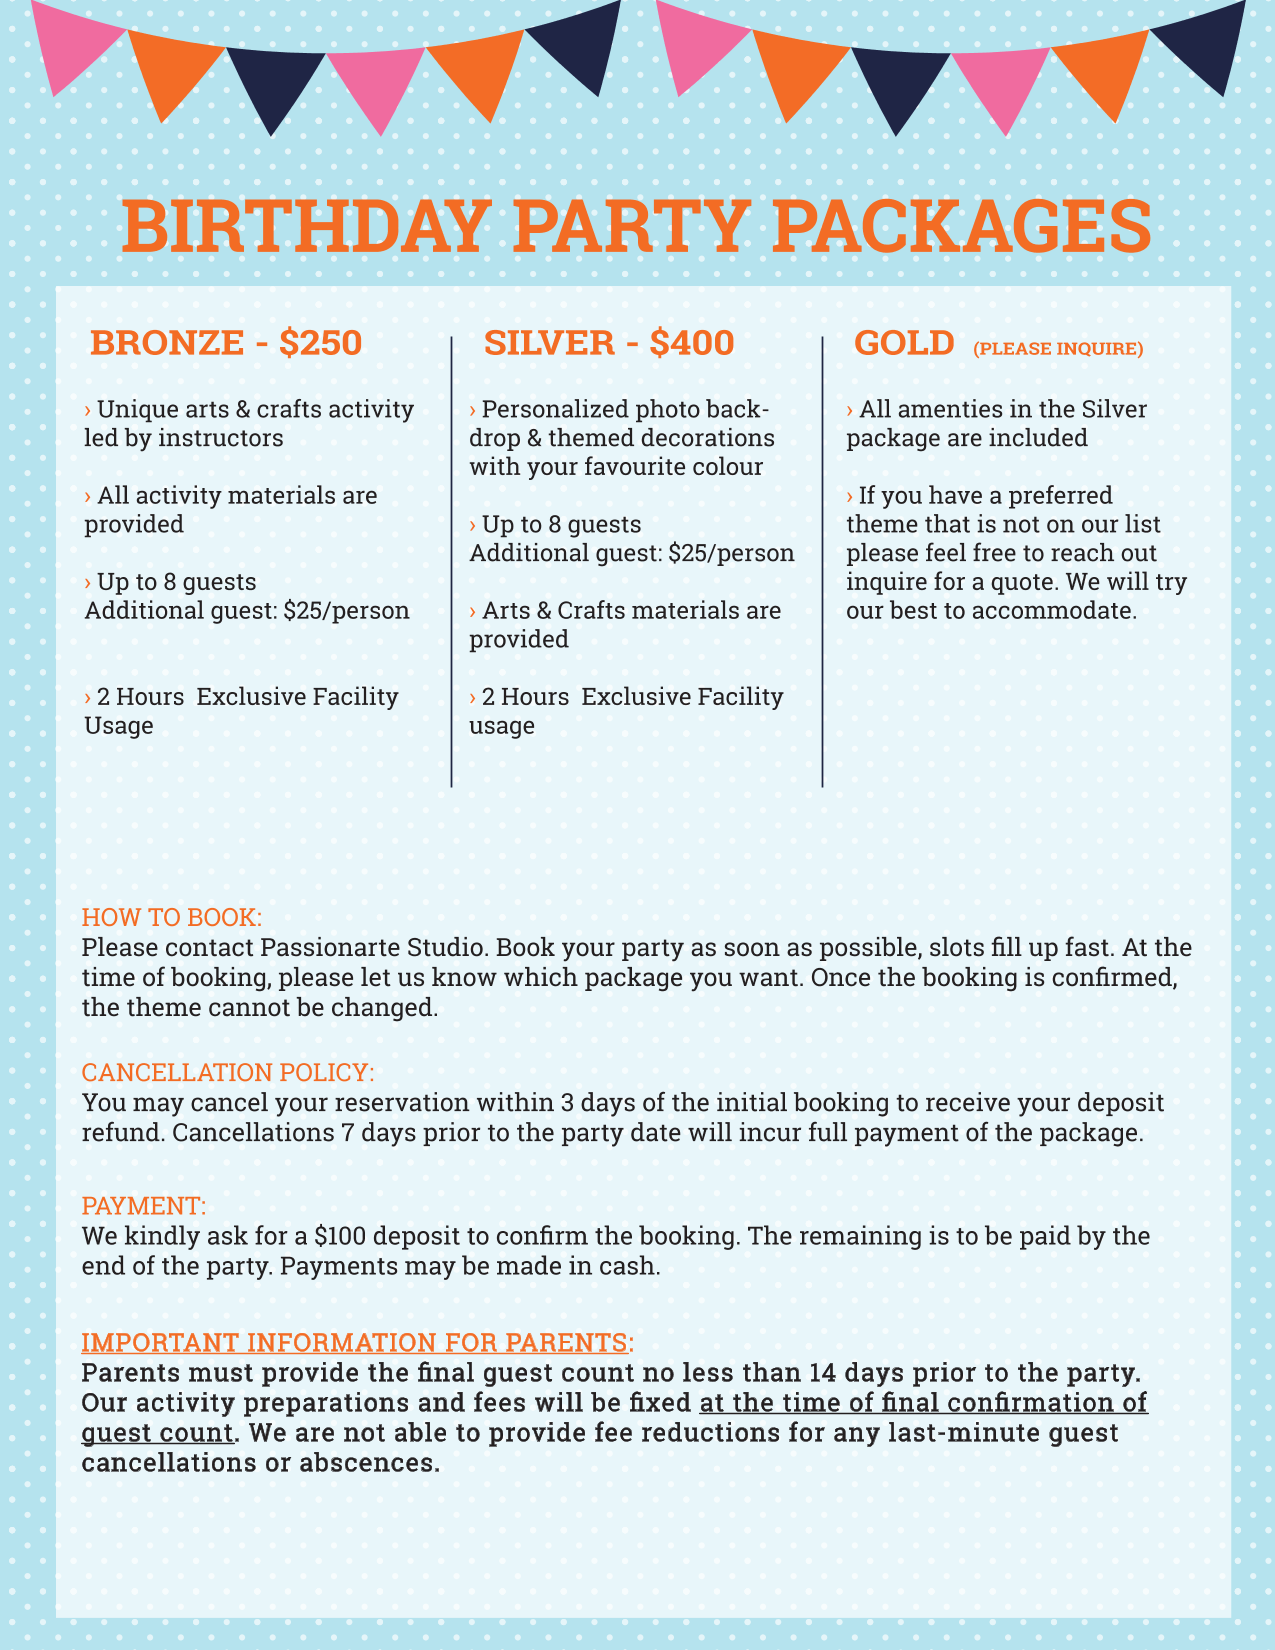 Birthday Packages 2020